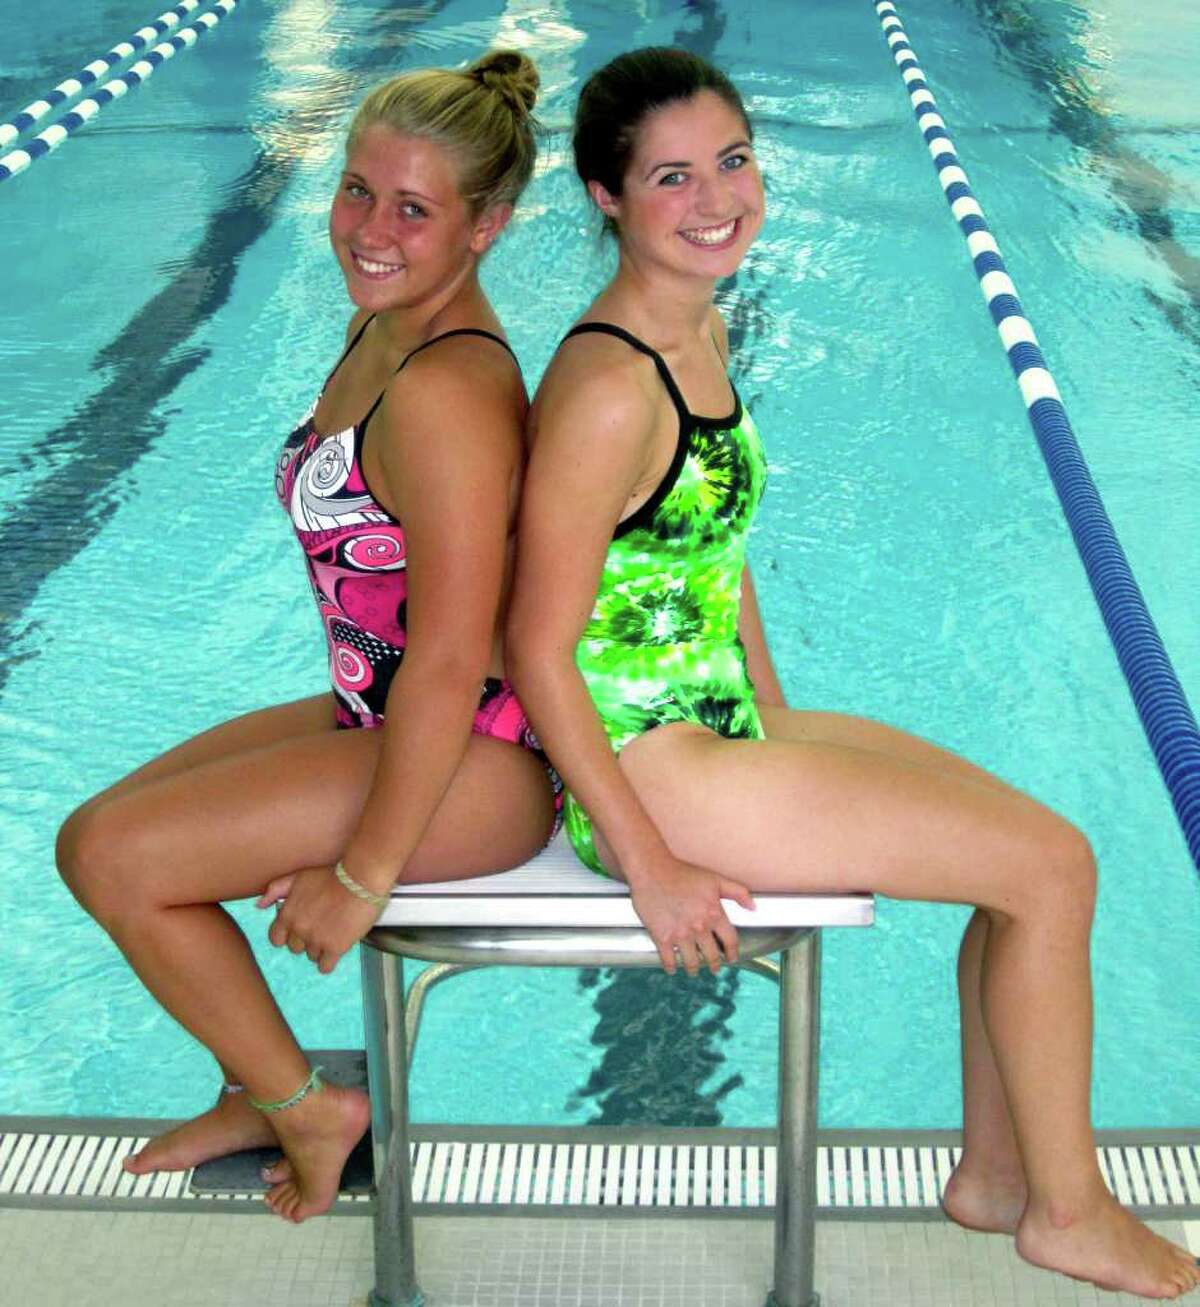 SPECTRUM/Maggie Heaton, left, and Toni Viola bring a wealth of swim team experience to their roles as captains for New Milford High School girls' swimming, September 2011